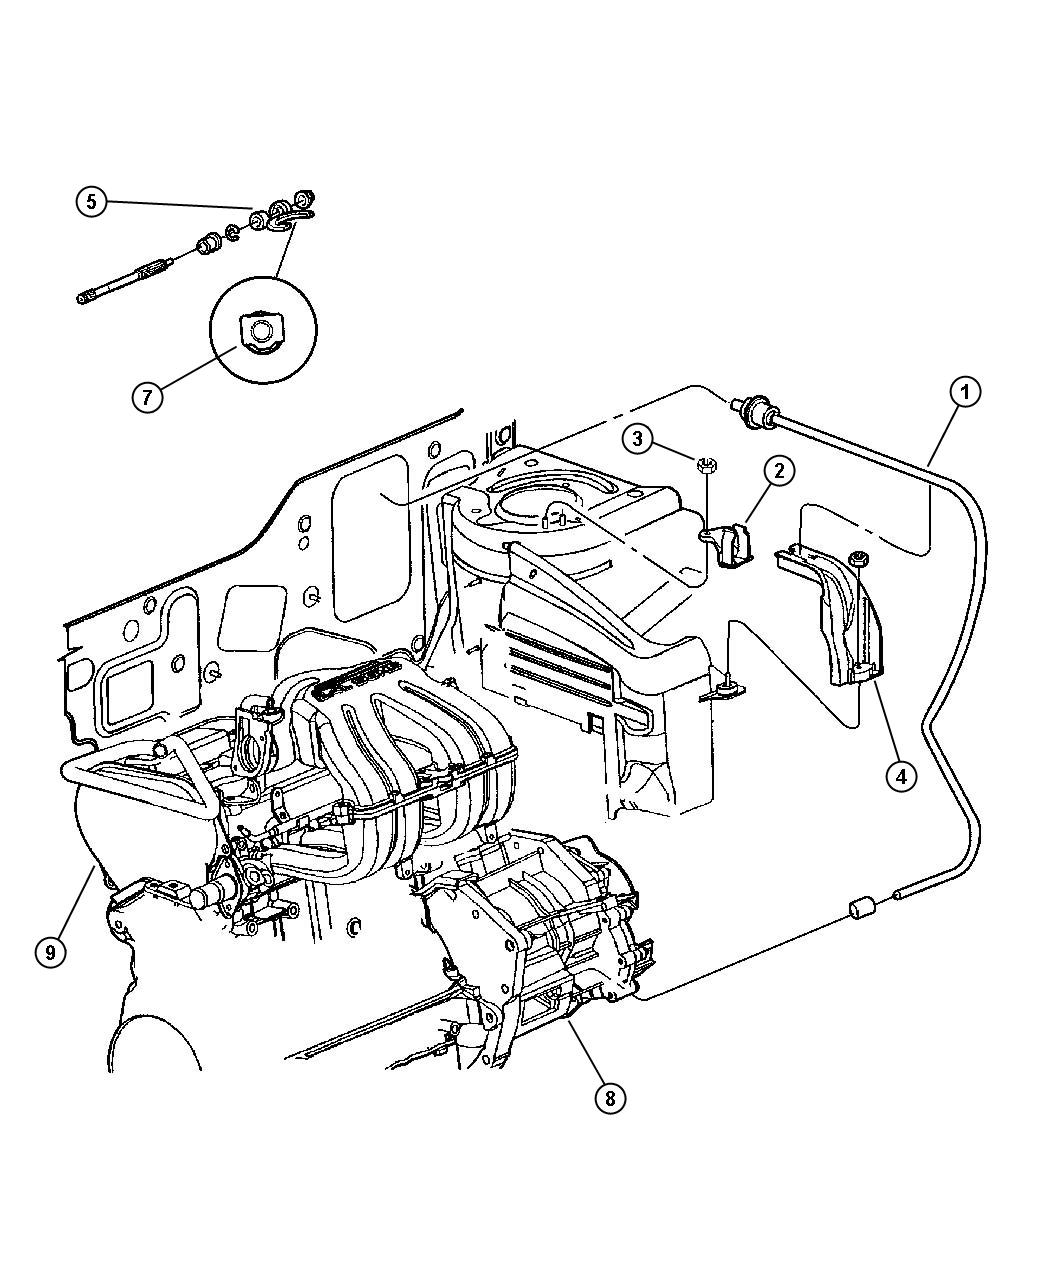 Wiring Diagram 76 Jeep Cj7 Jeep Auto Wiring Diagram